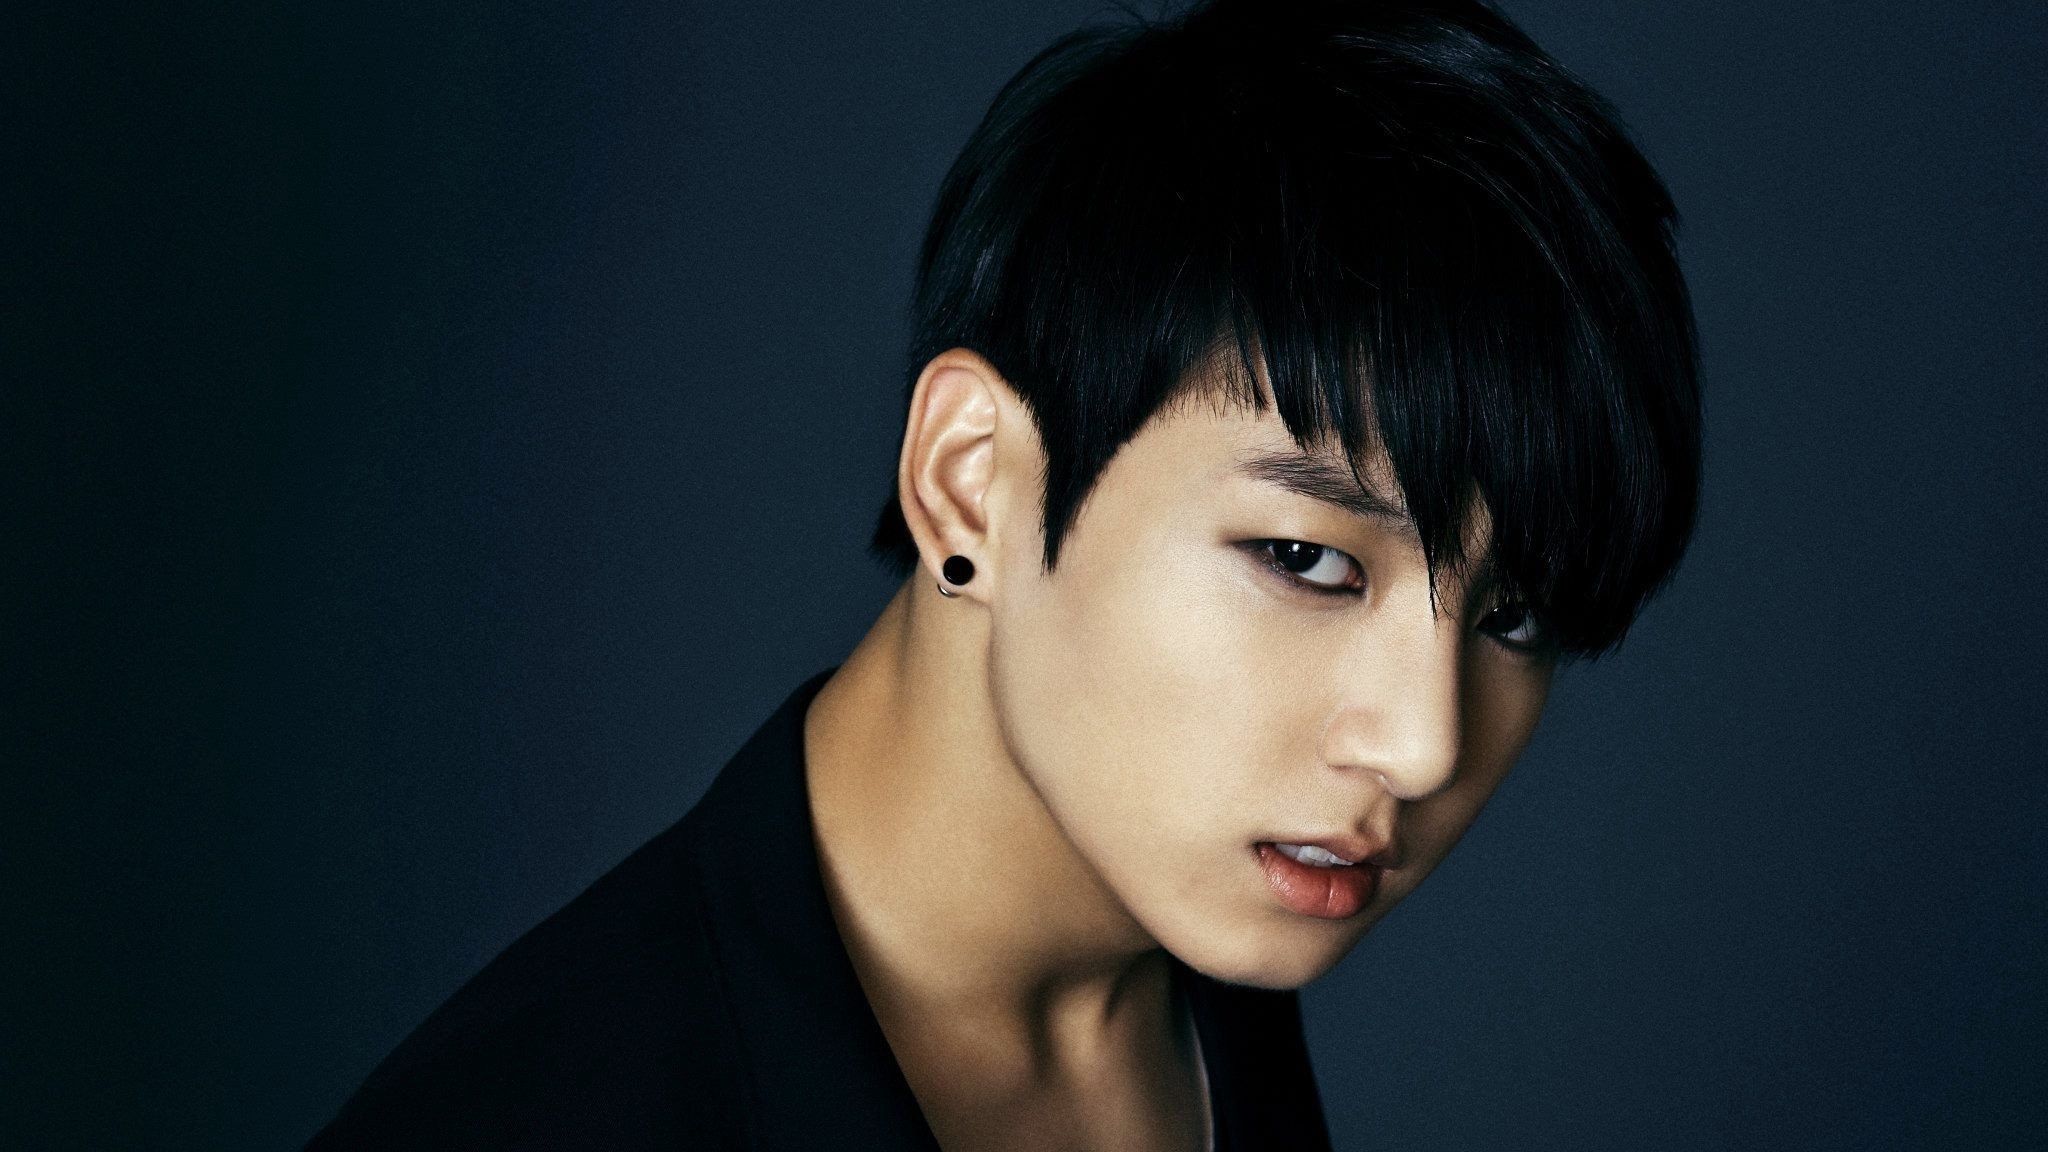 2048x1152  Wallpaper bangtan boys, jungkook, singer, face